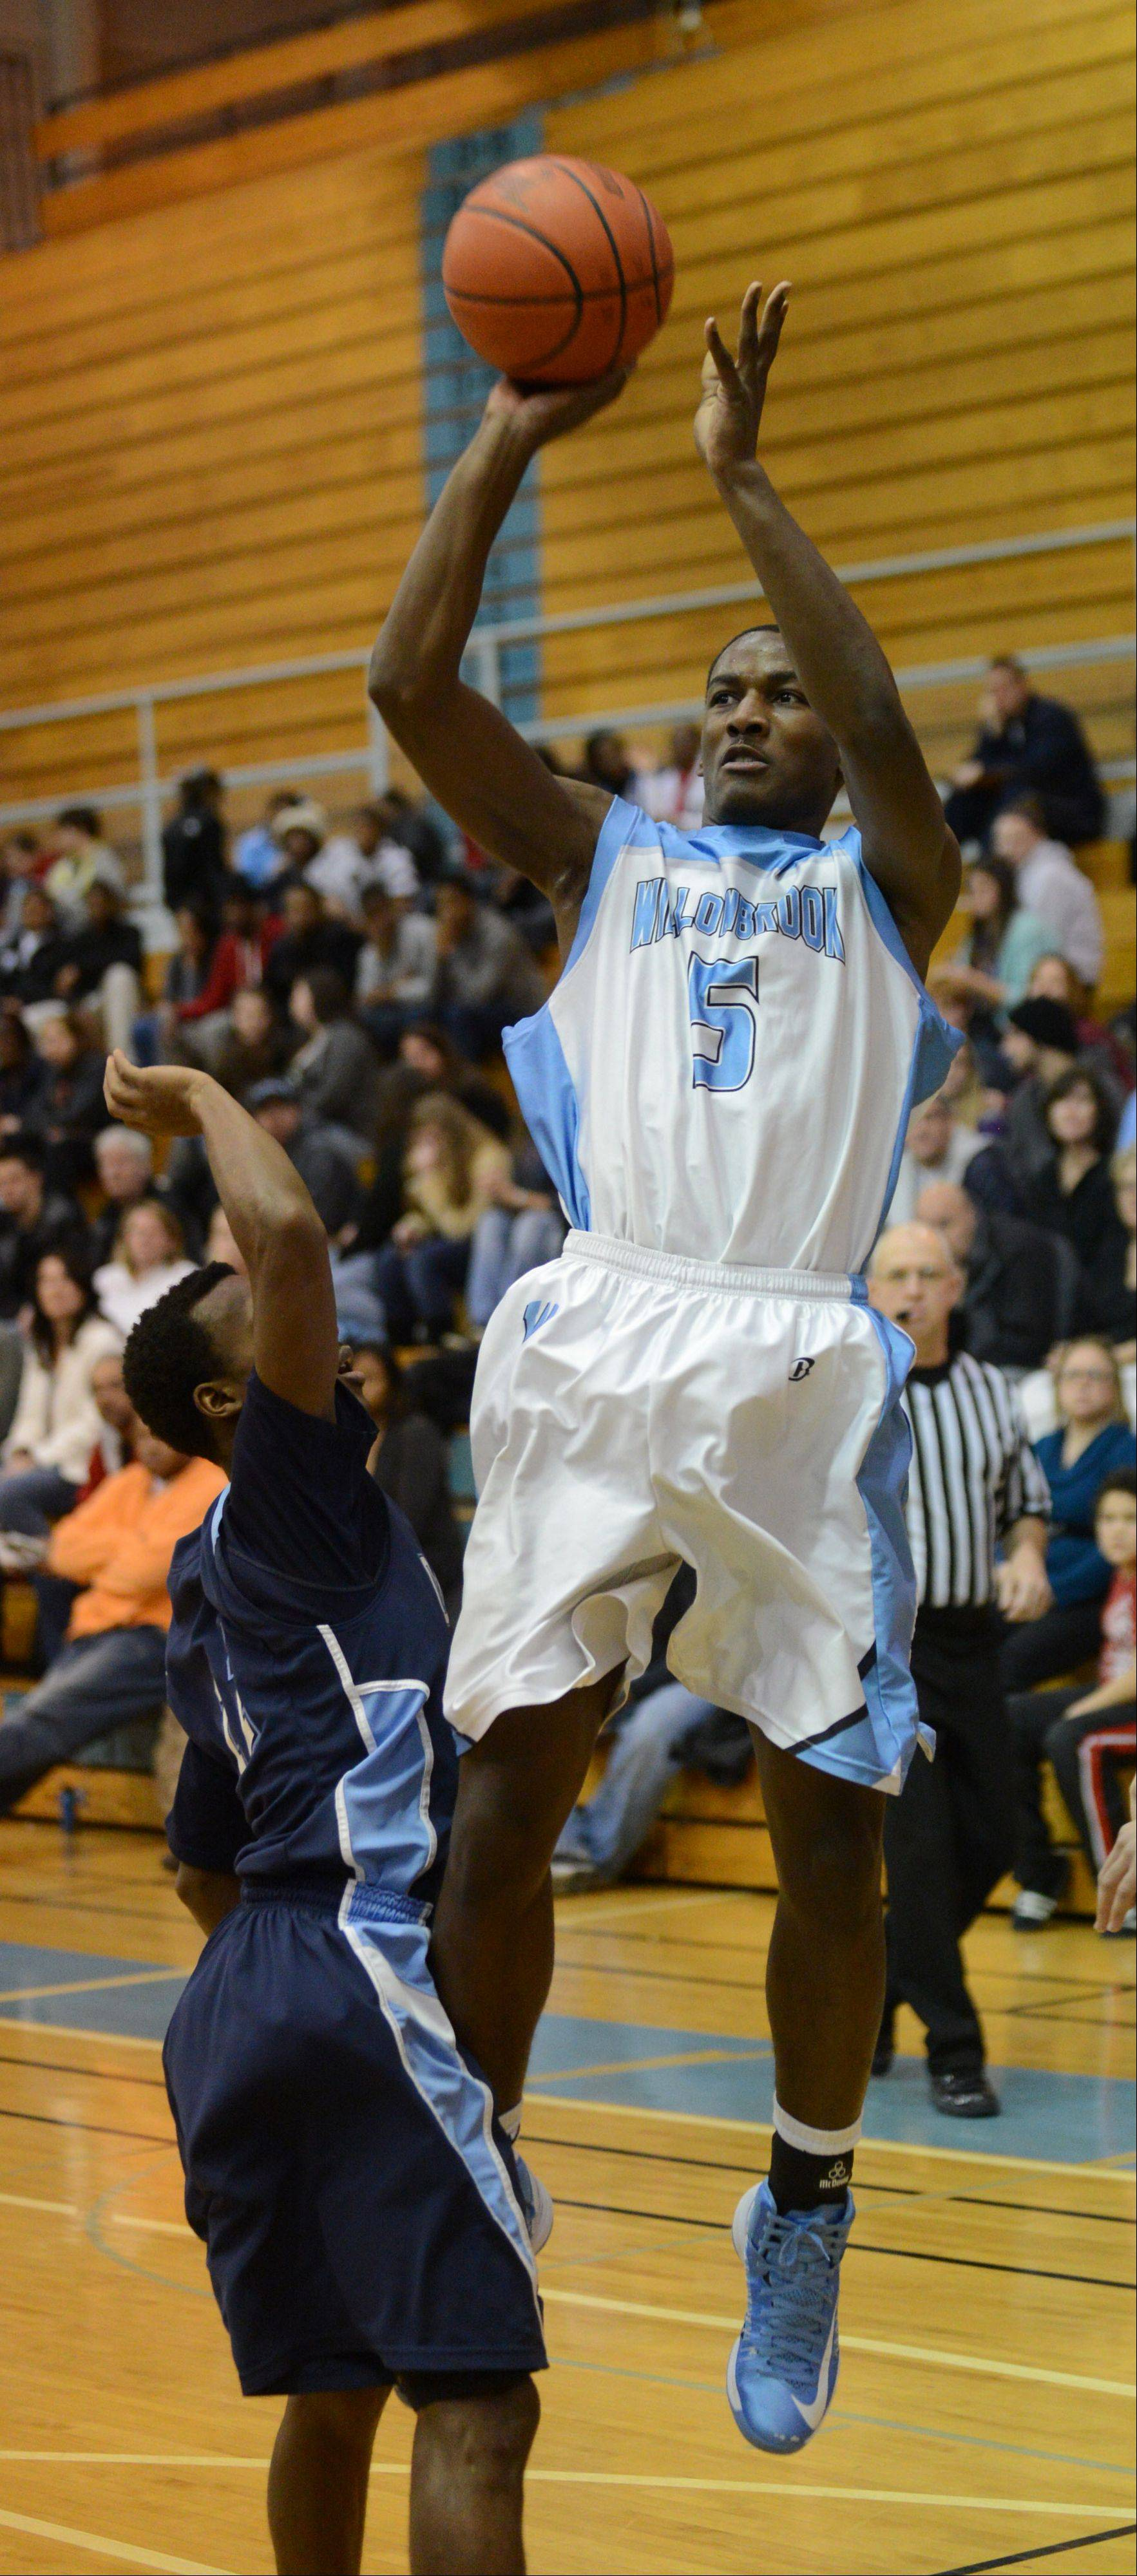 Tiger Greene of Willowbrook puts up a shot.